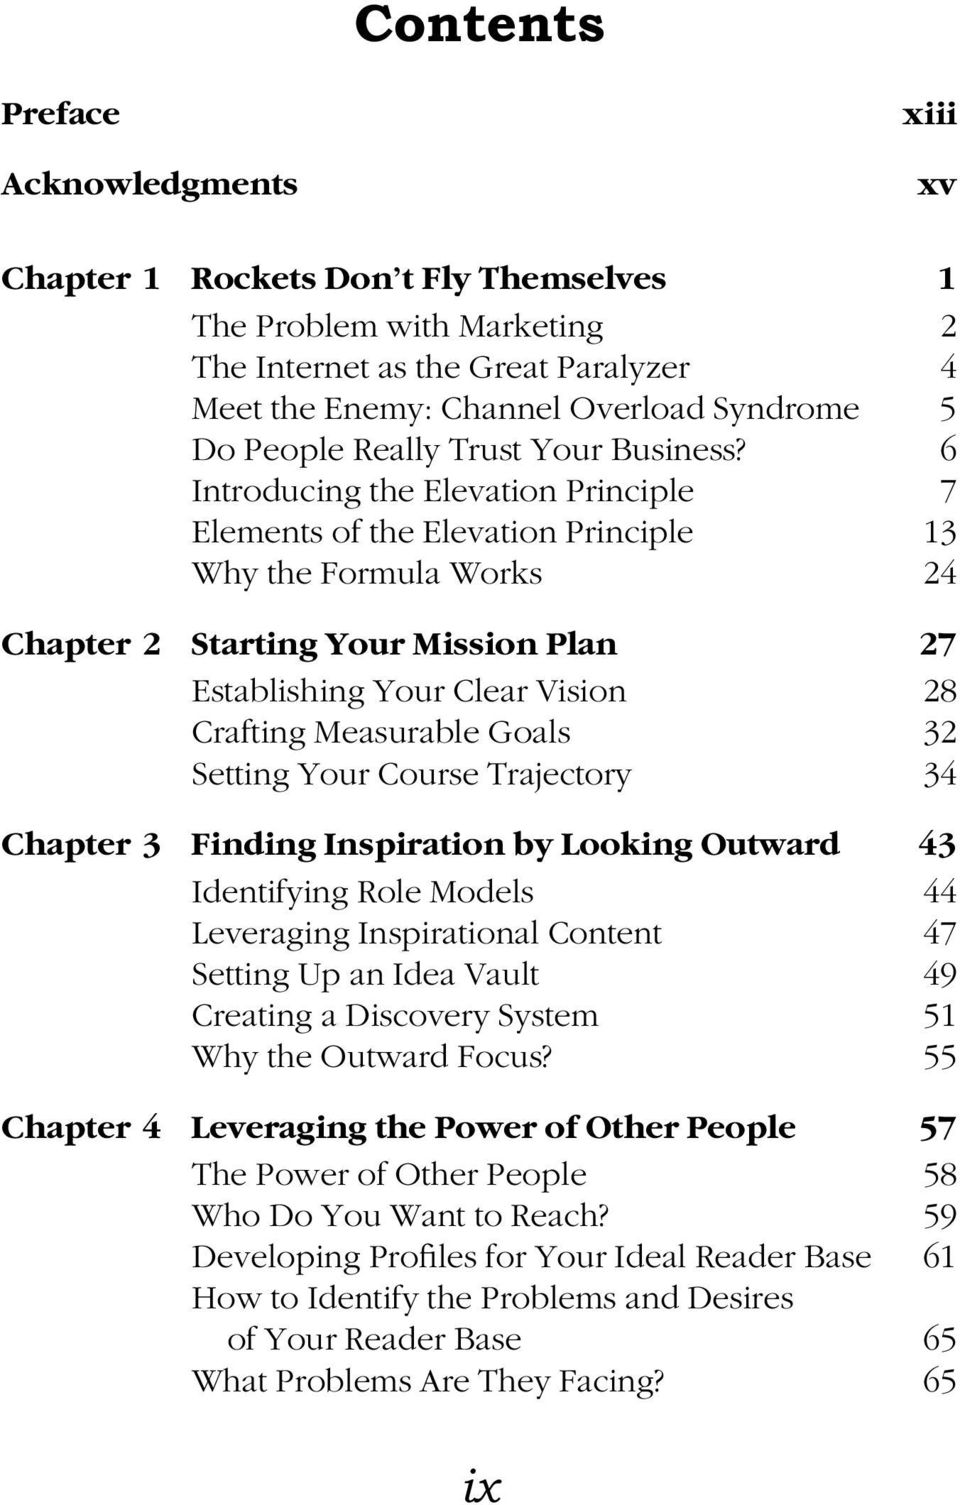 6 Introducing the Elevation Principle 7 Elements of the Elevation Principle 13 Why the Formula Works 24 Chapter 2 Starting Your Mission Plan 27 Establishing Your Clear Vision 28 Crafting Measurable